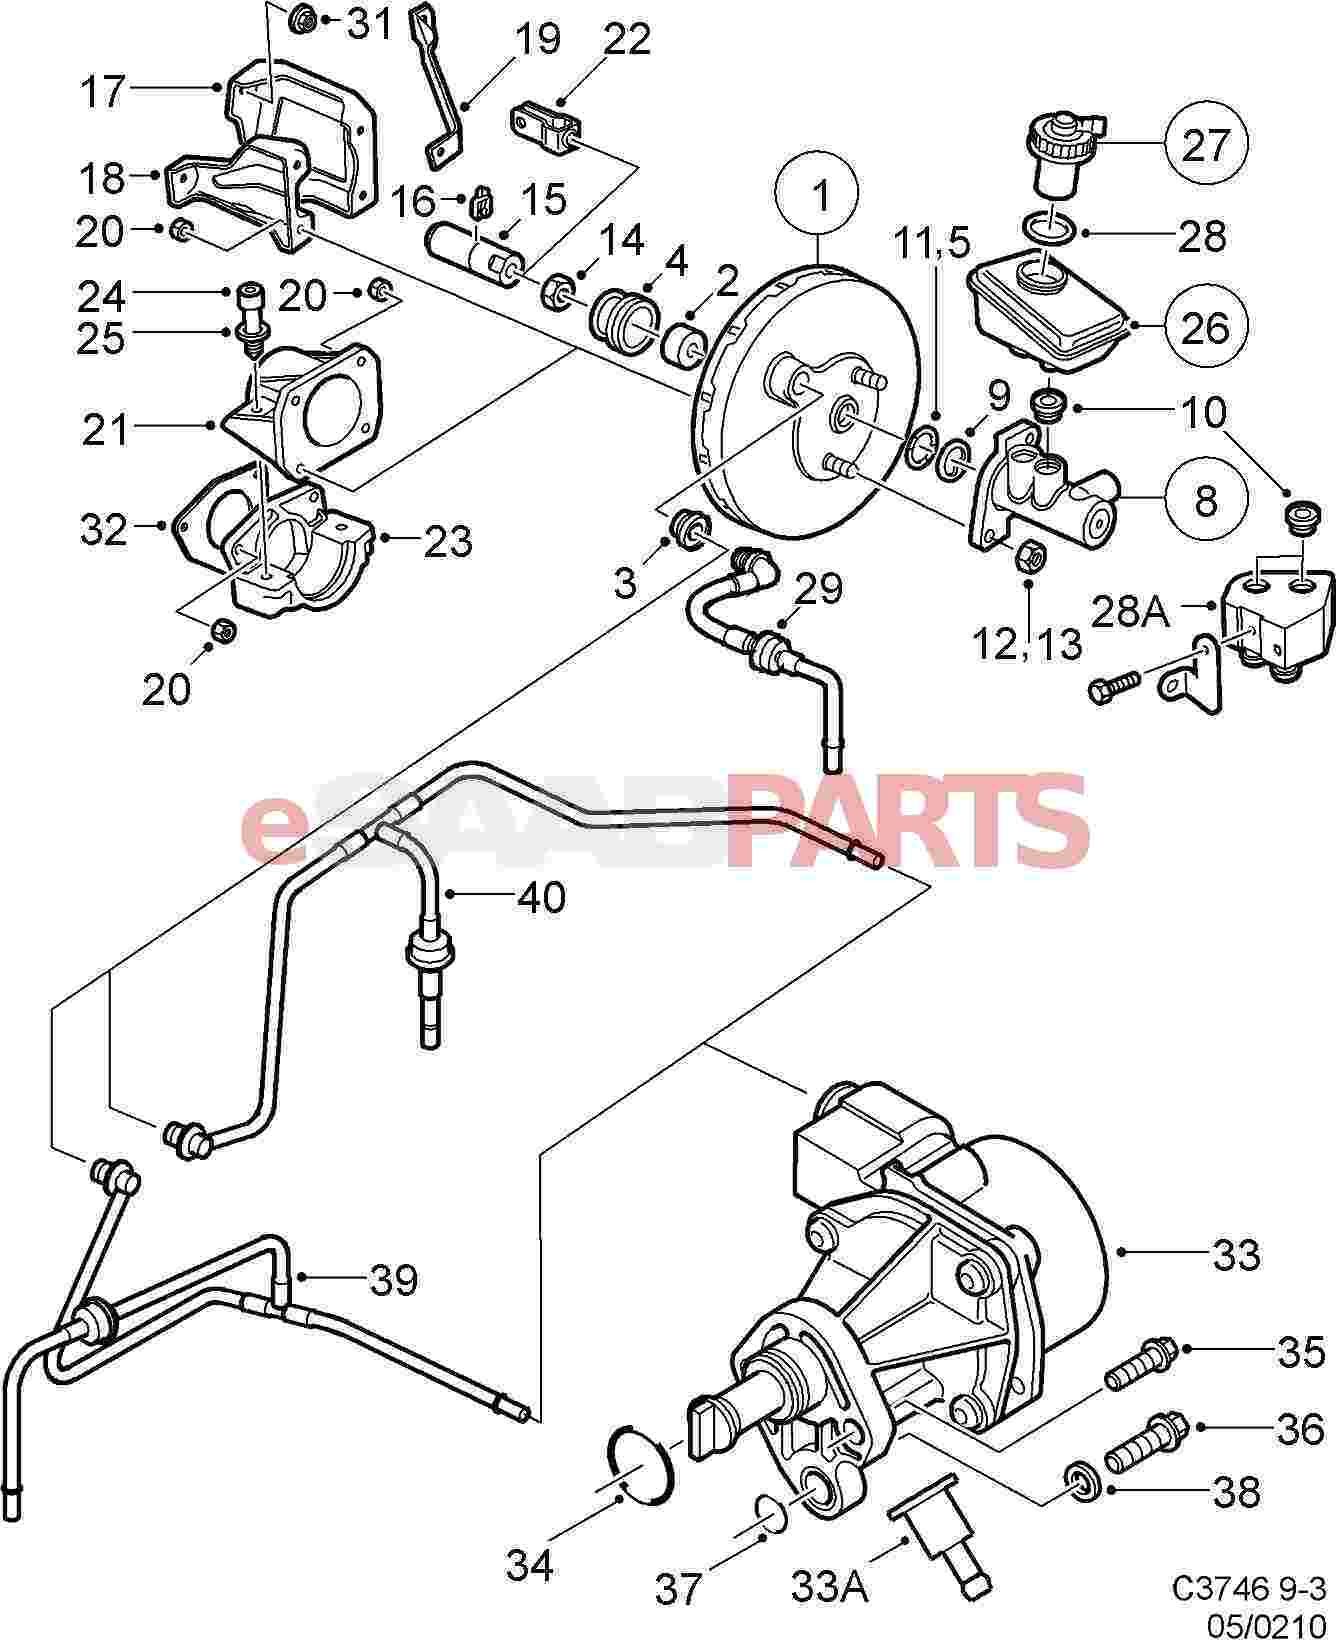 hight resolution of esaabparts com saab 9 3 9400 u003e brakes parts u003e brake vacuumesaabparts